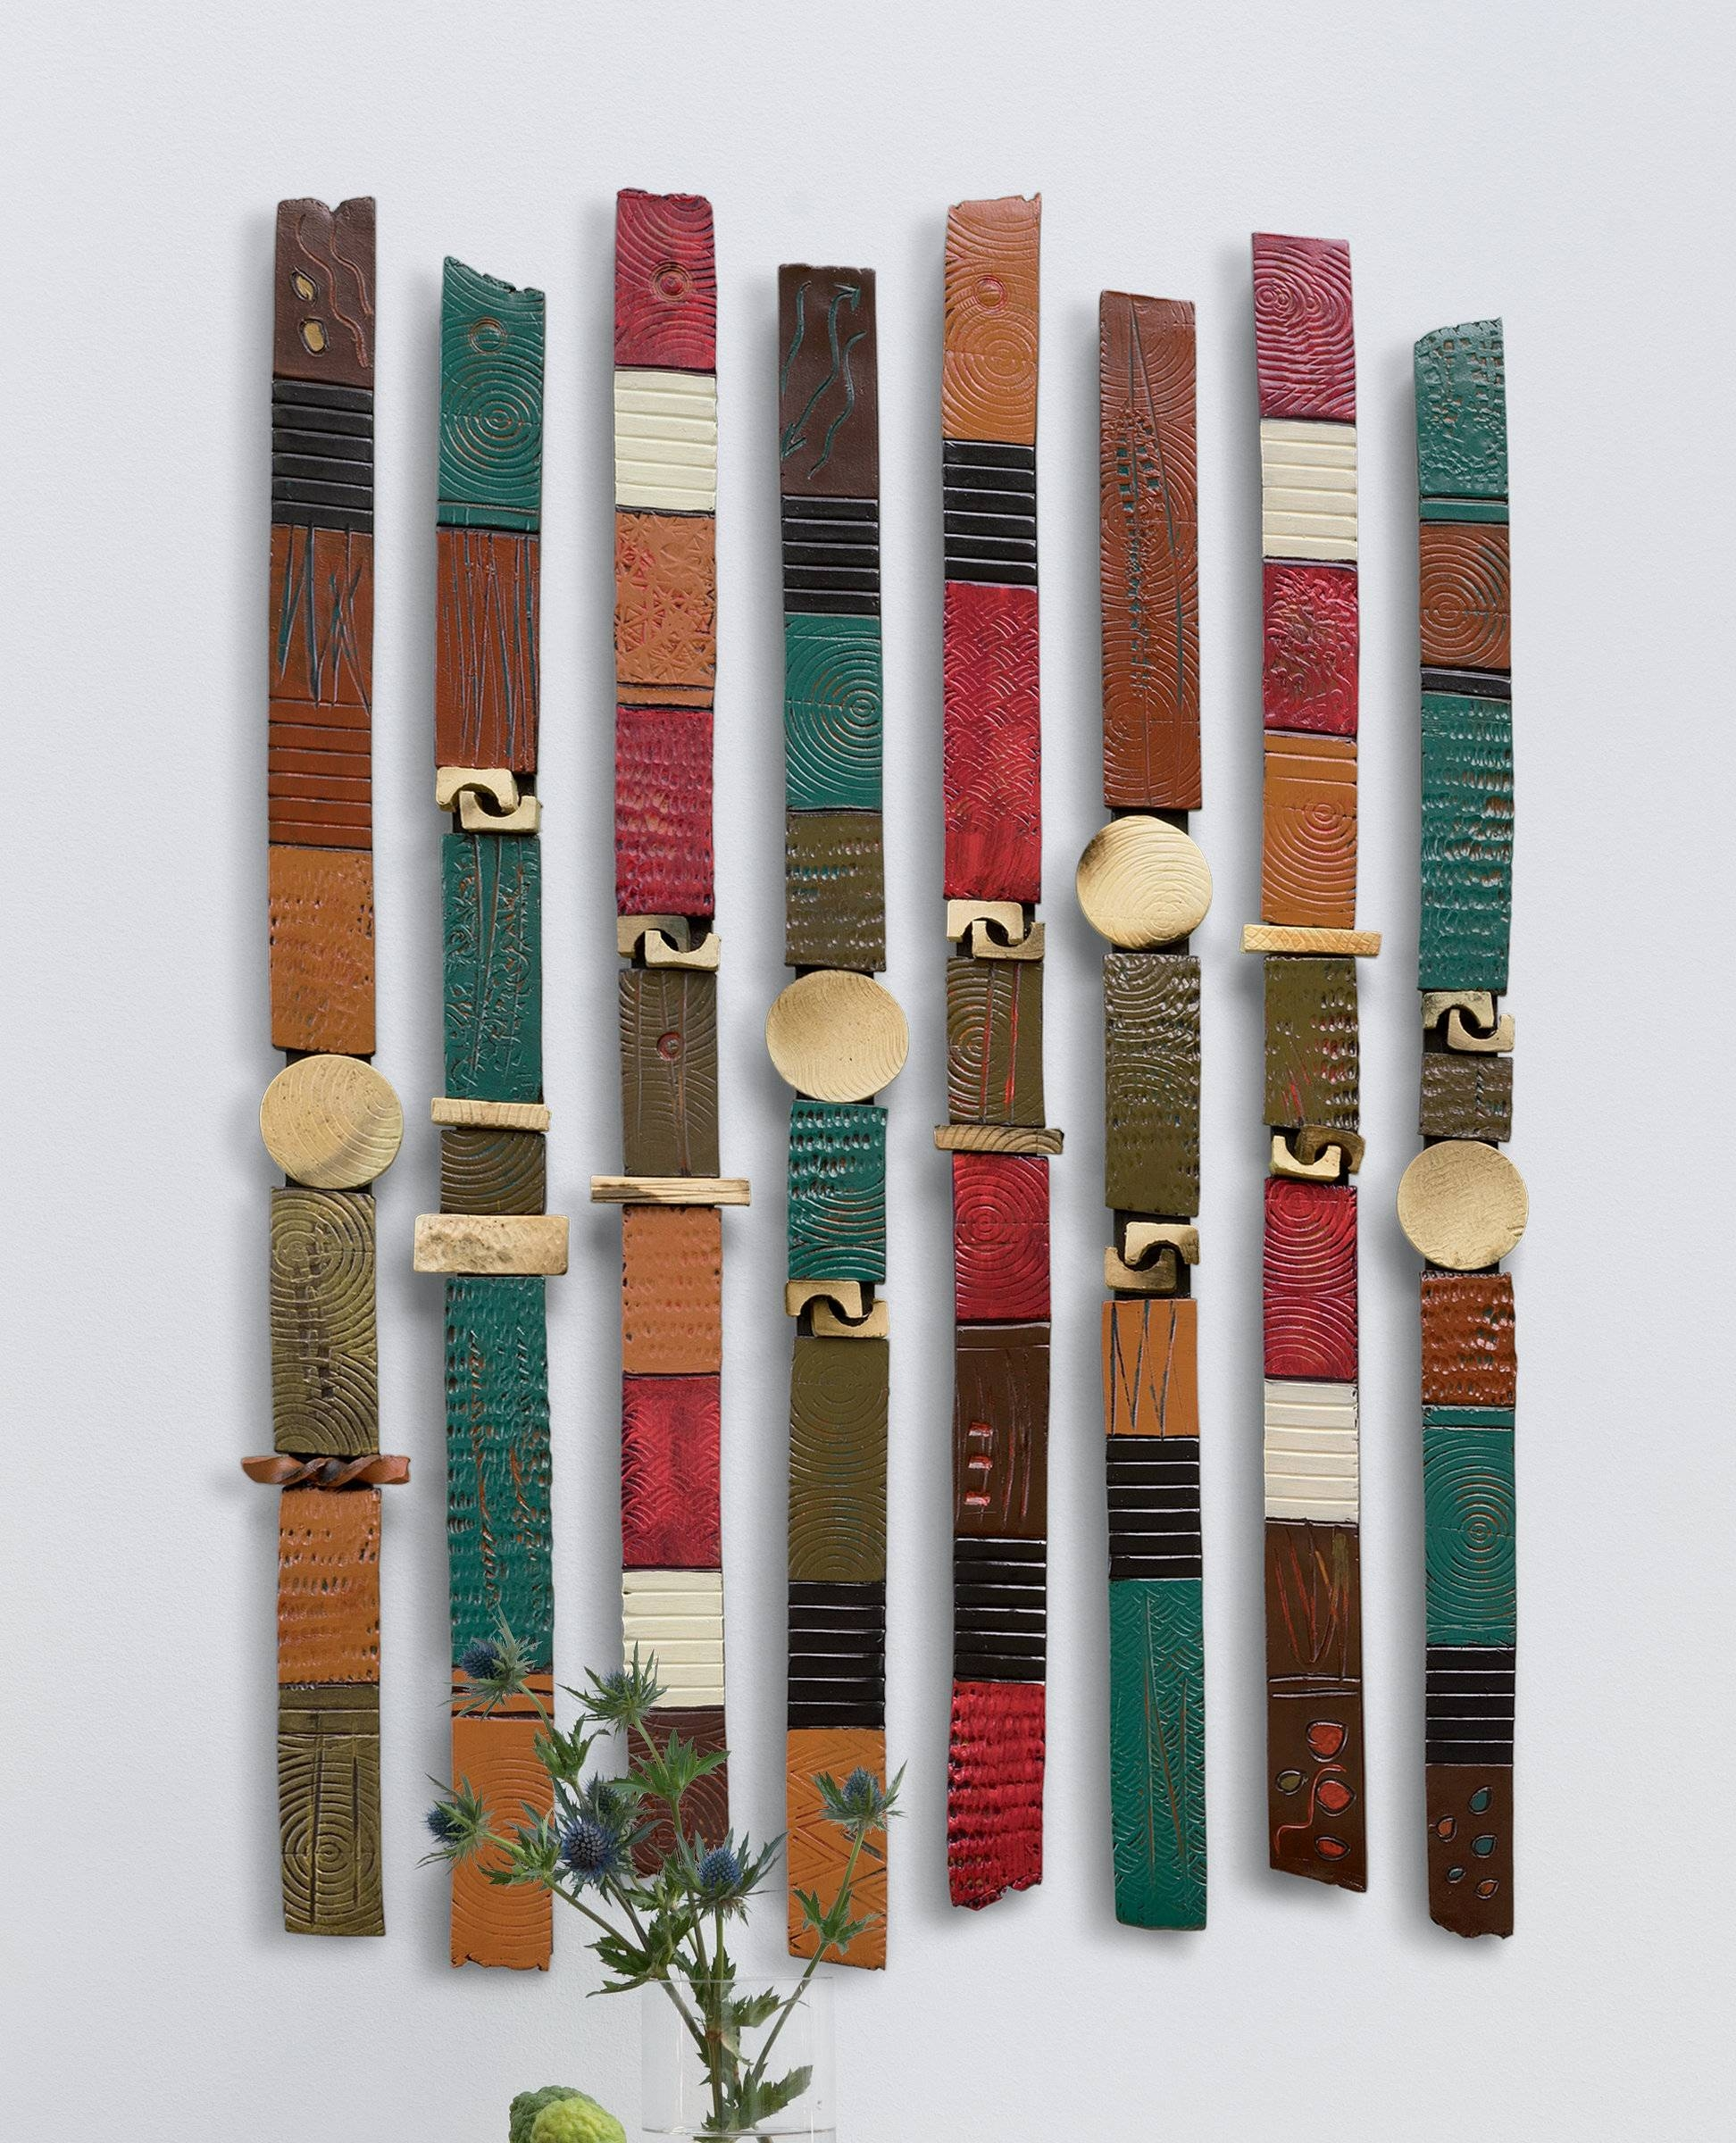 Story Sticksrhonda Cearlock (ceramic Wall Sculpture) | Artful Home Intended For 2017 Large Ceramic Wall Art (View 4 of 25)